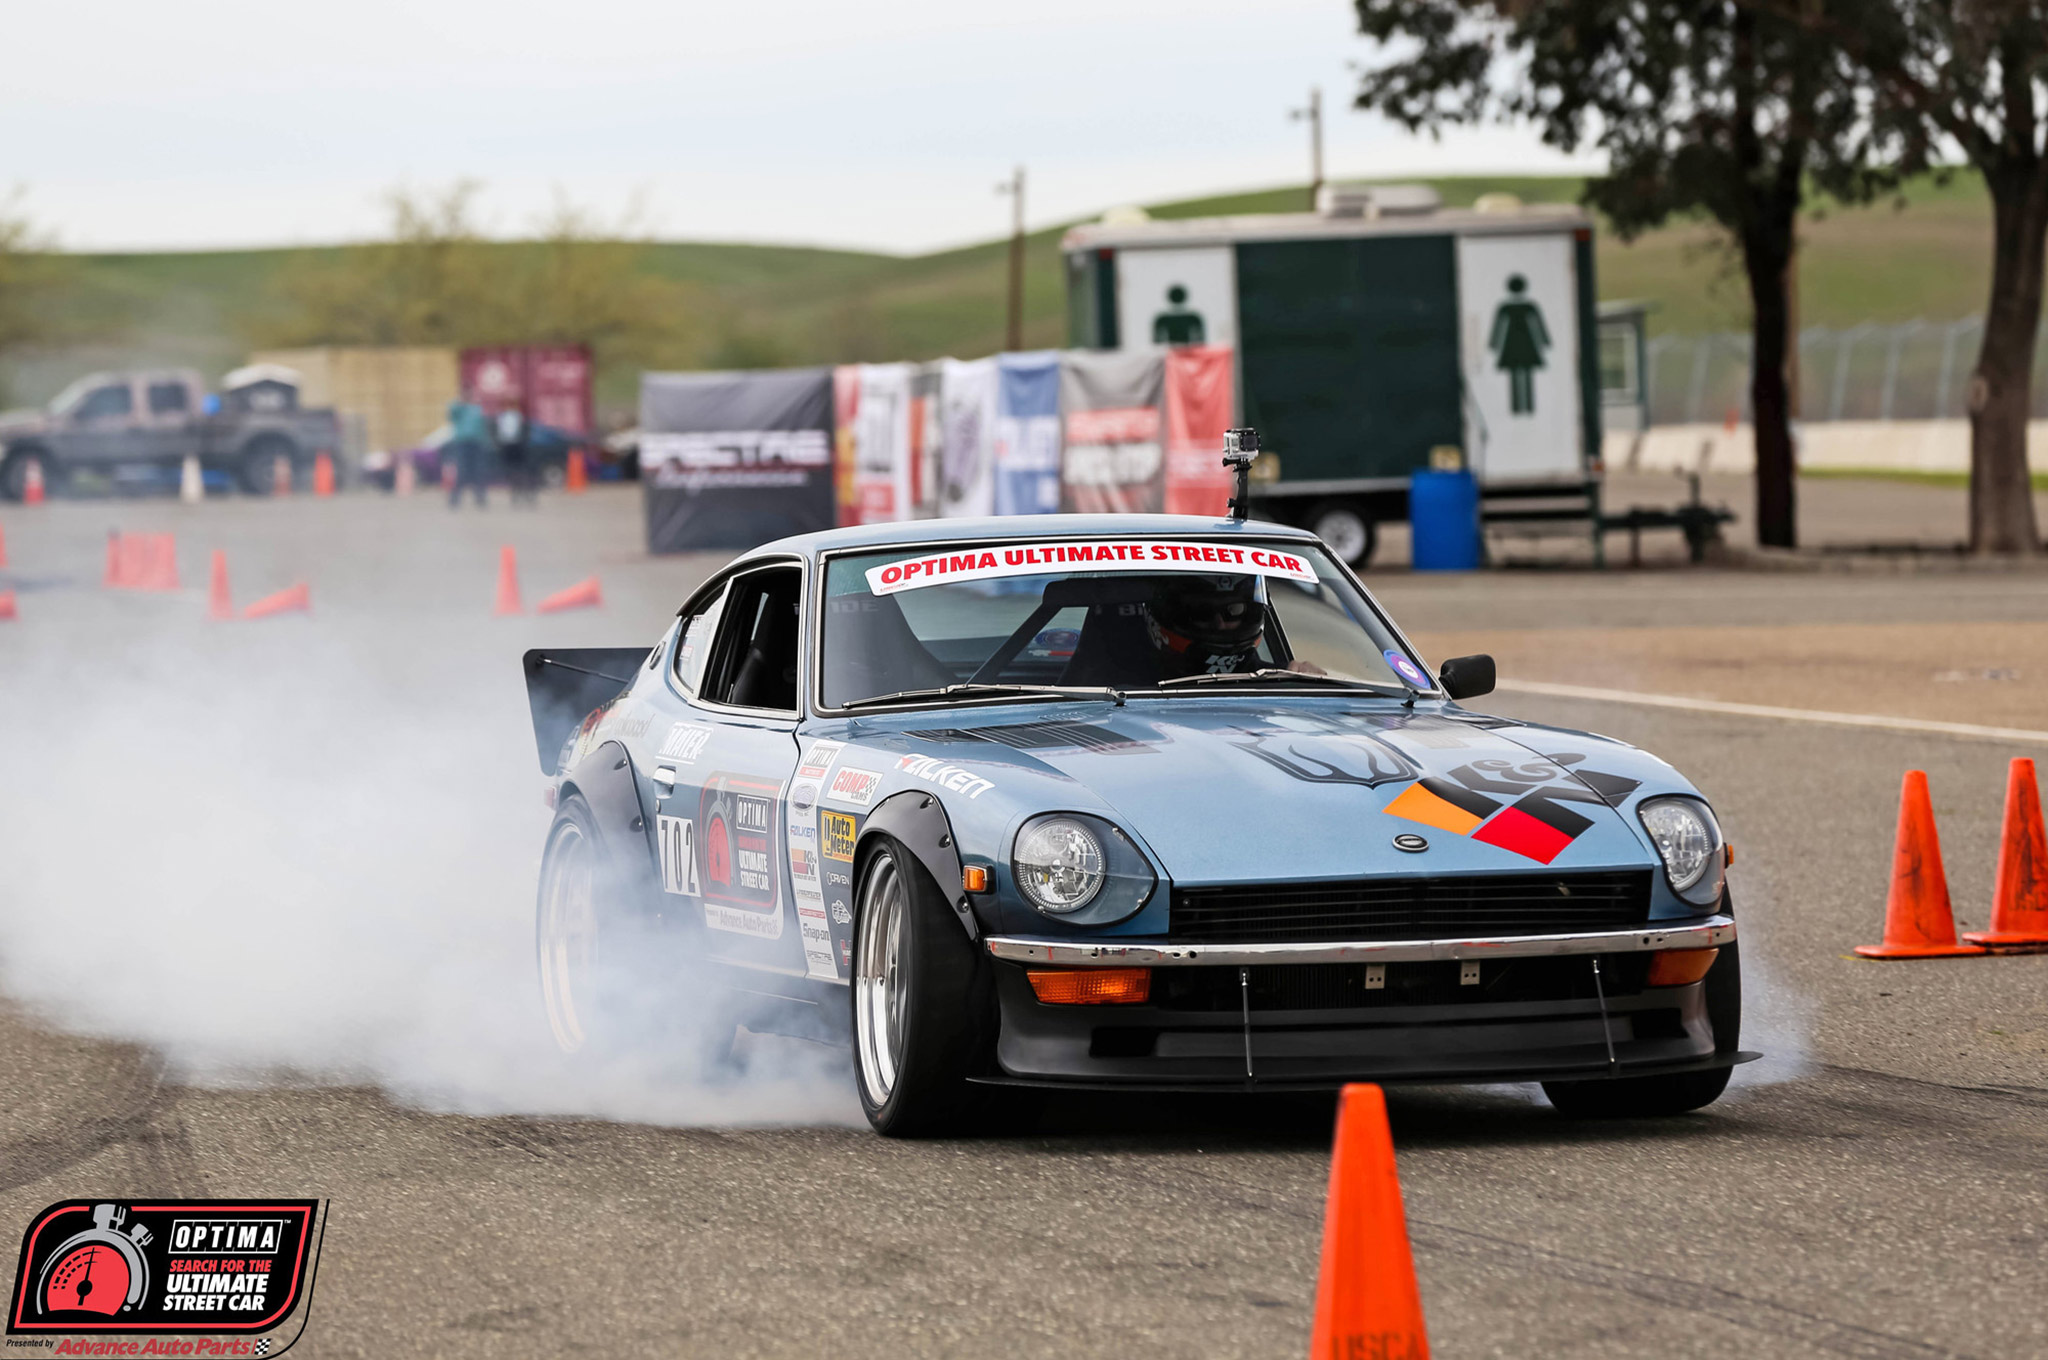 It may be a Datsun on the outside, but David Carroll's 280Z is all Chevy under the hood. His LS1-powered Datsun competed in the 2015 OUSCI and he's looking to make a return trip in 2016.